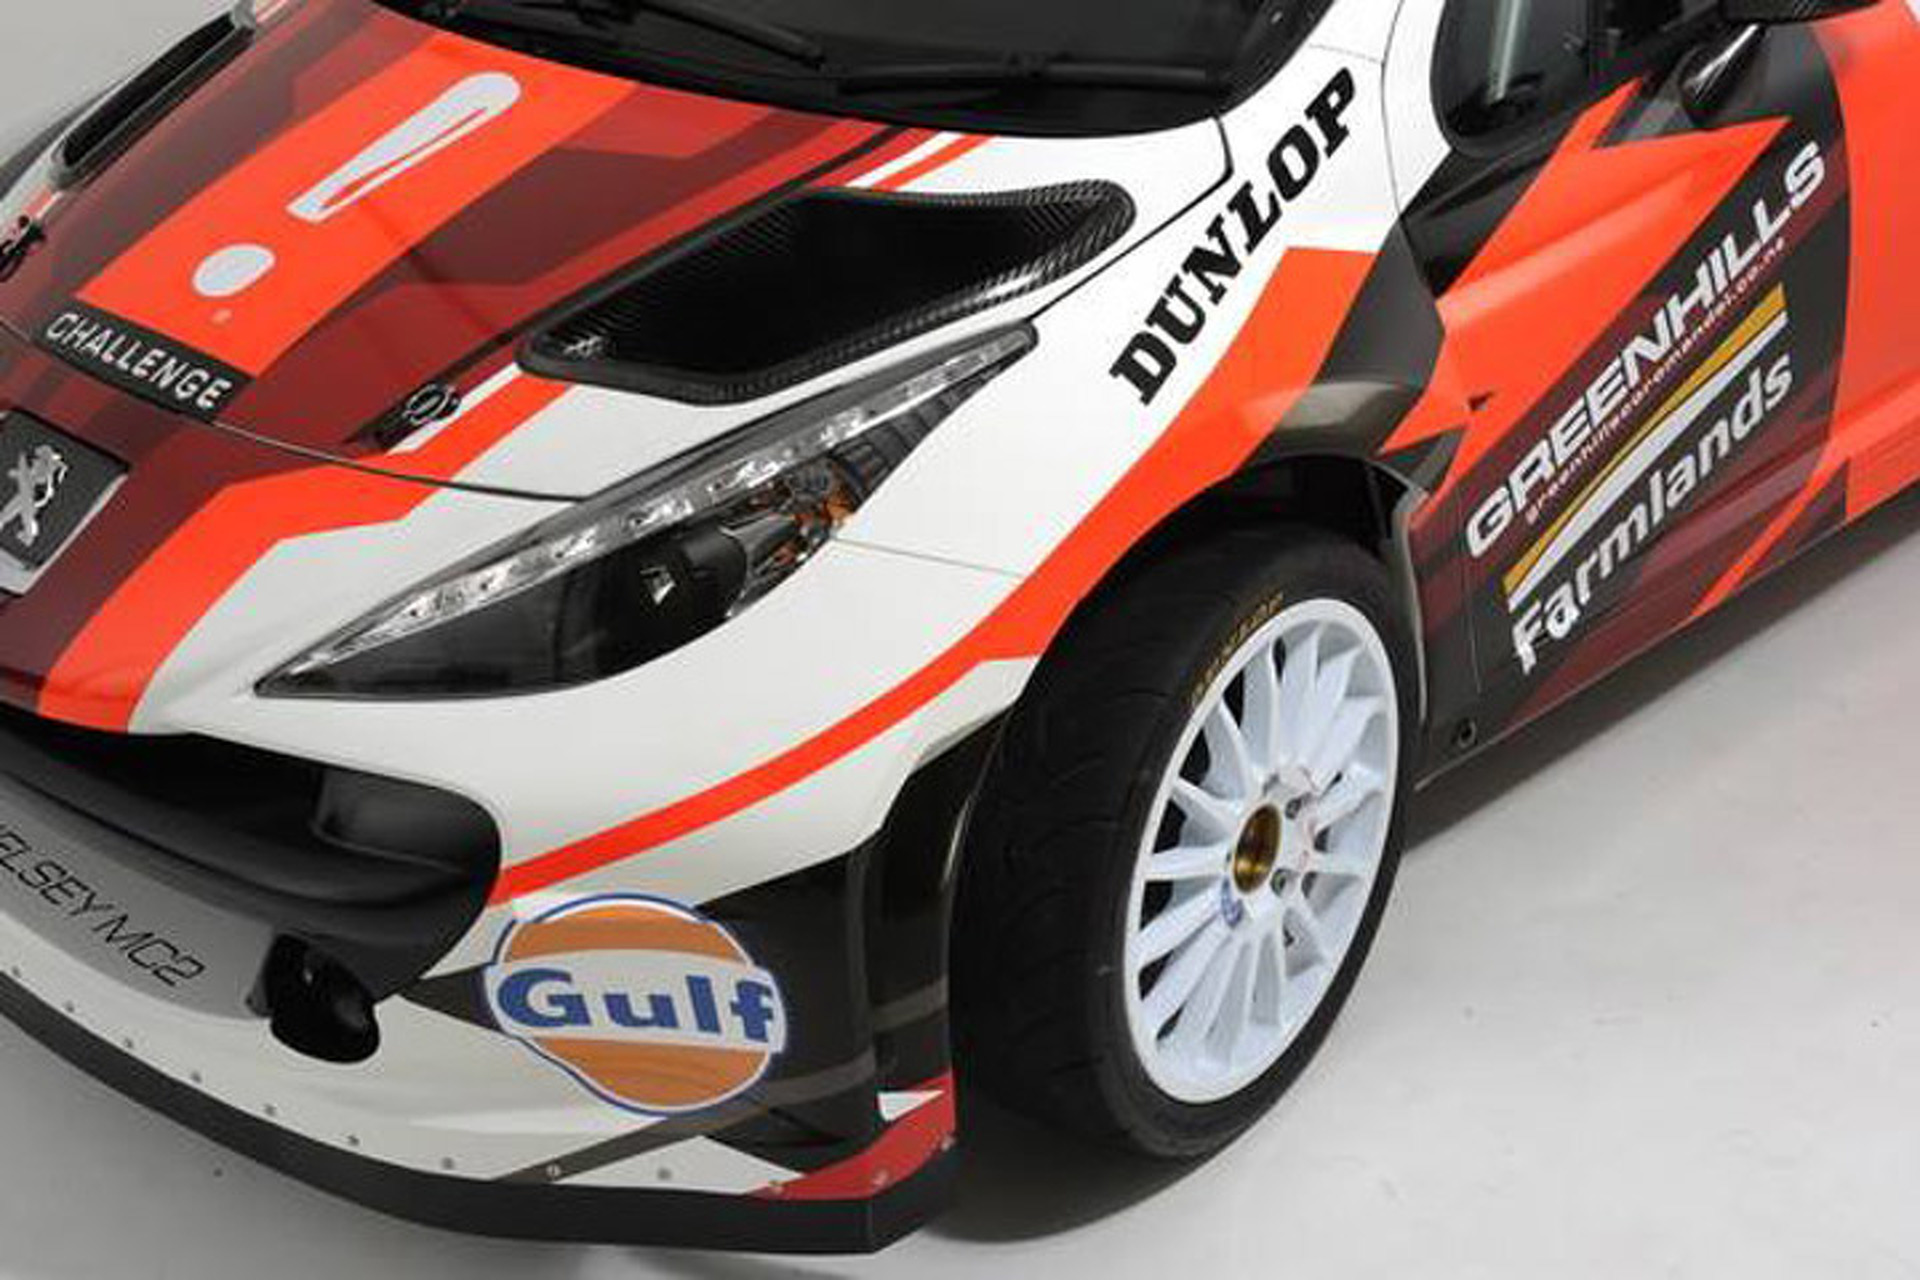 A 21-Year-Old Built This Insane Rally Car